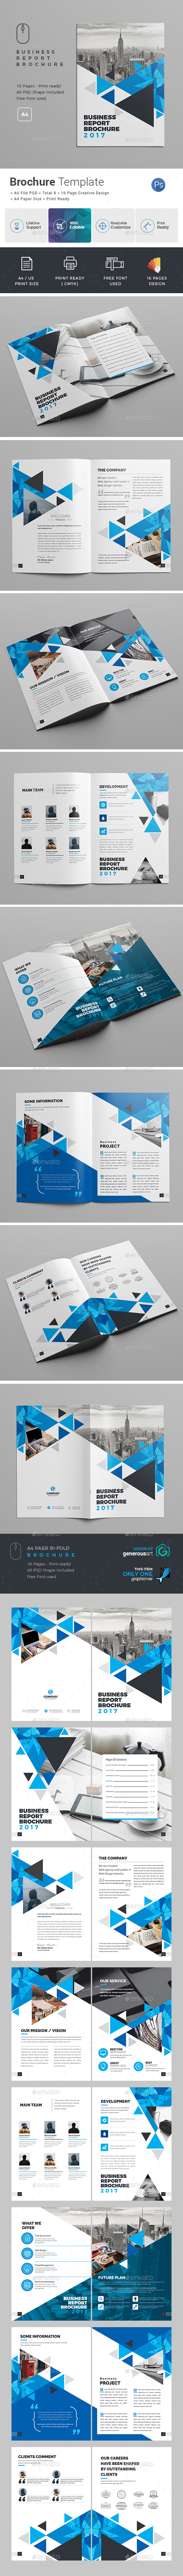 Brochure Template - Corporate Brochures